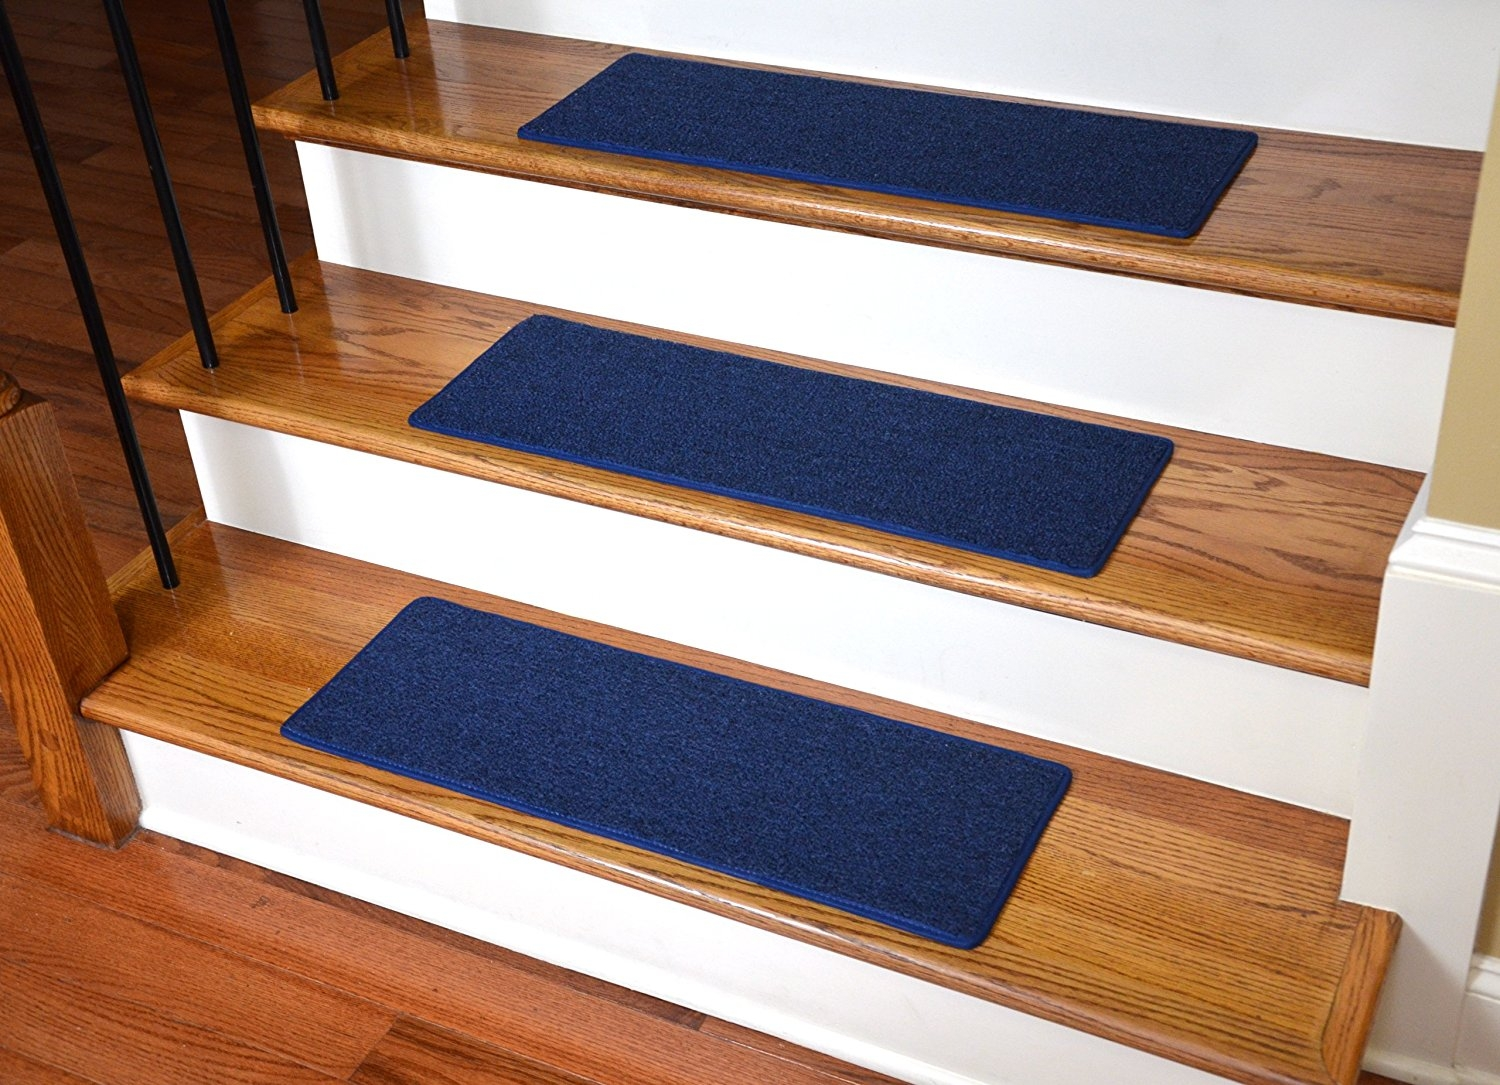 Dean Carpet Stair Treads 23 X 8 Navy Blue Set Of 13 Home Inside Carpet Strips For Stairs (#8 of 20)